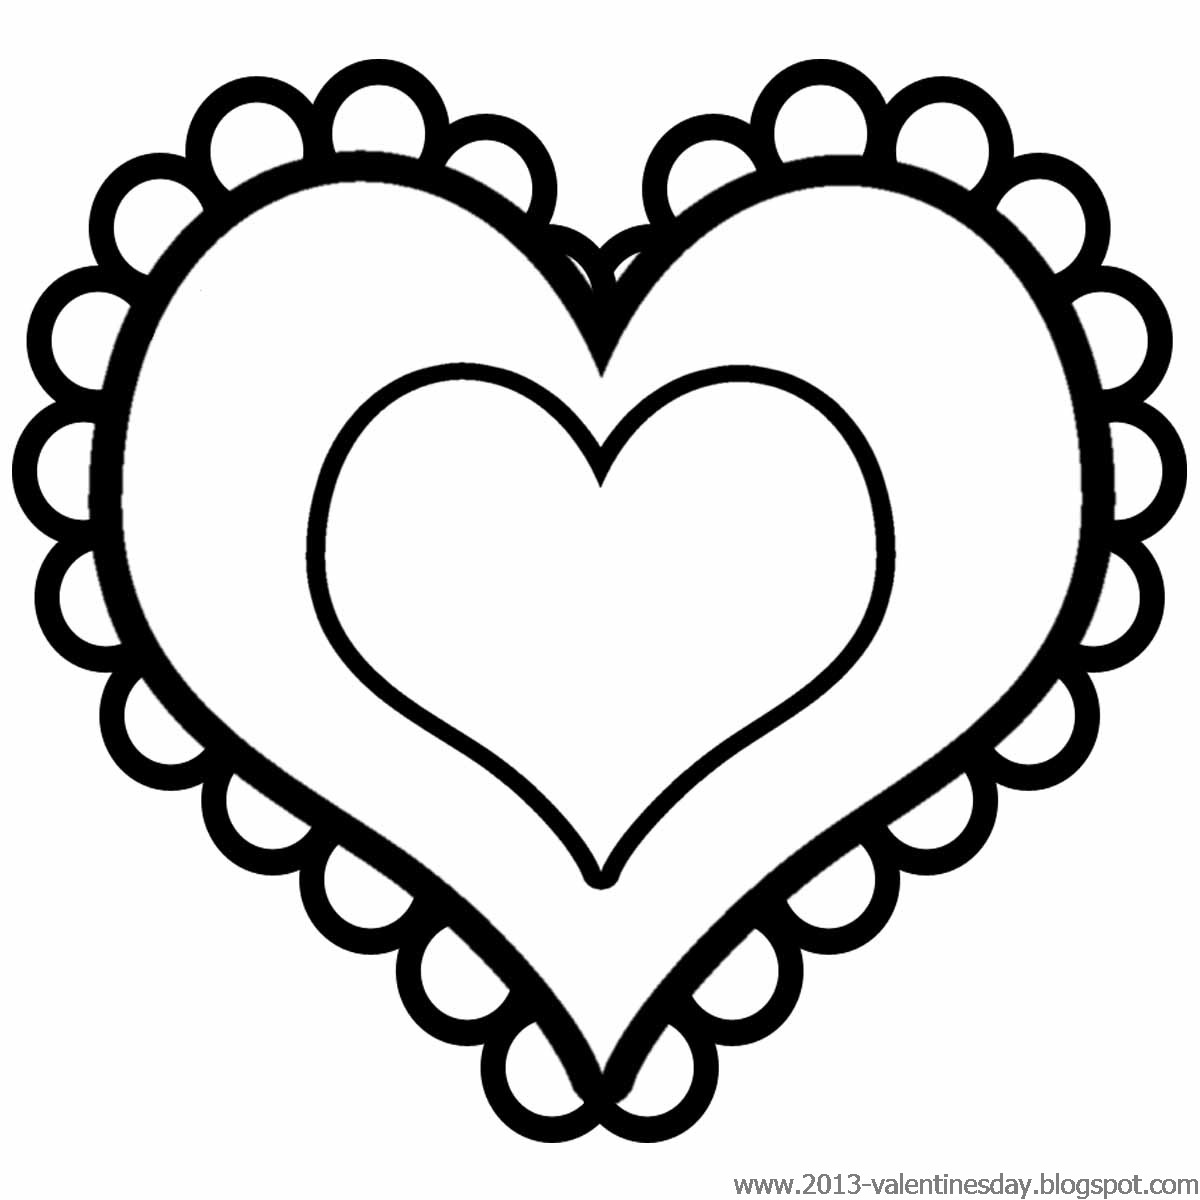 66+ Valentines Day Clipart Black And White.